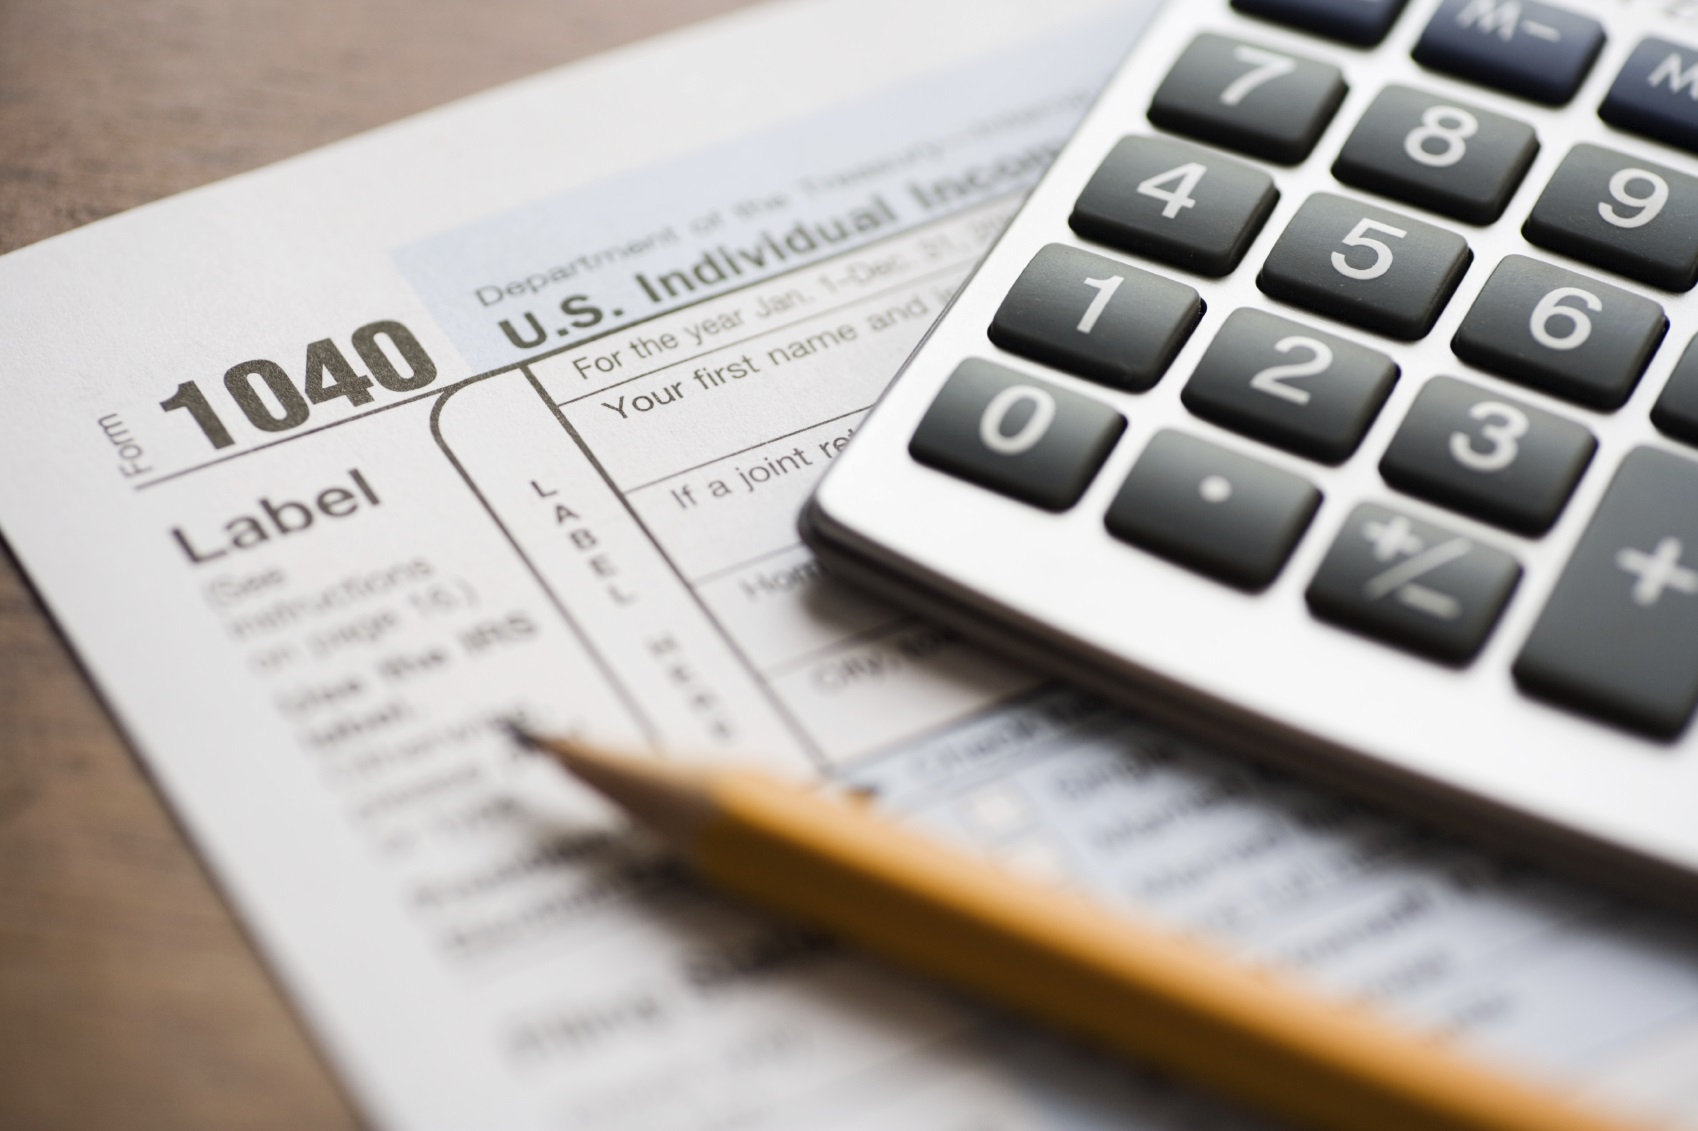 Building On The Success Of The Earned Income Tax Credit